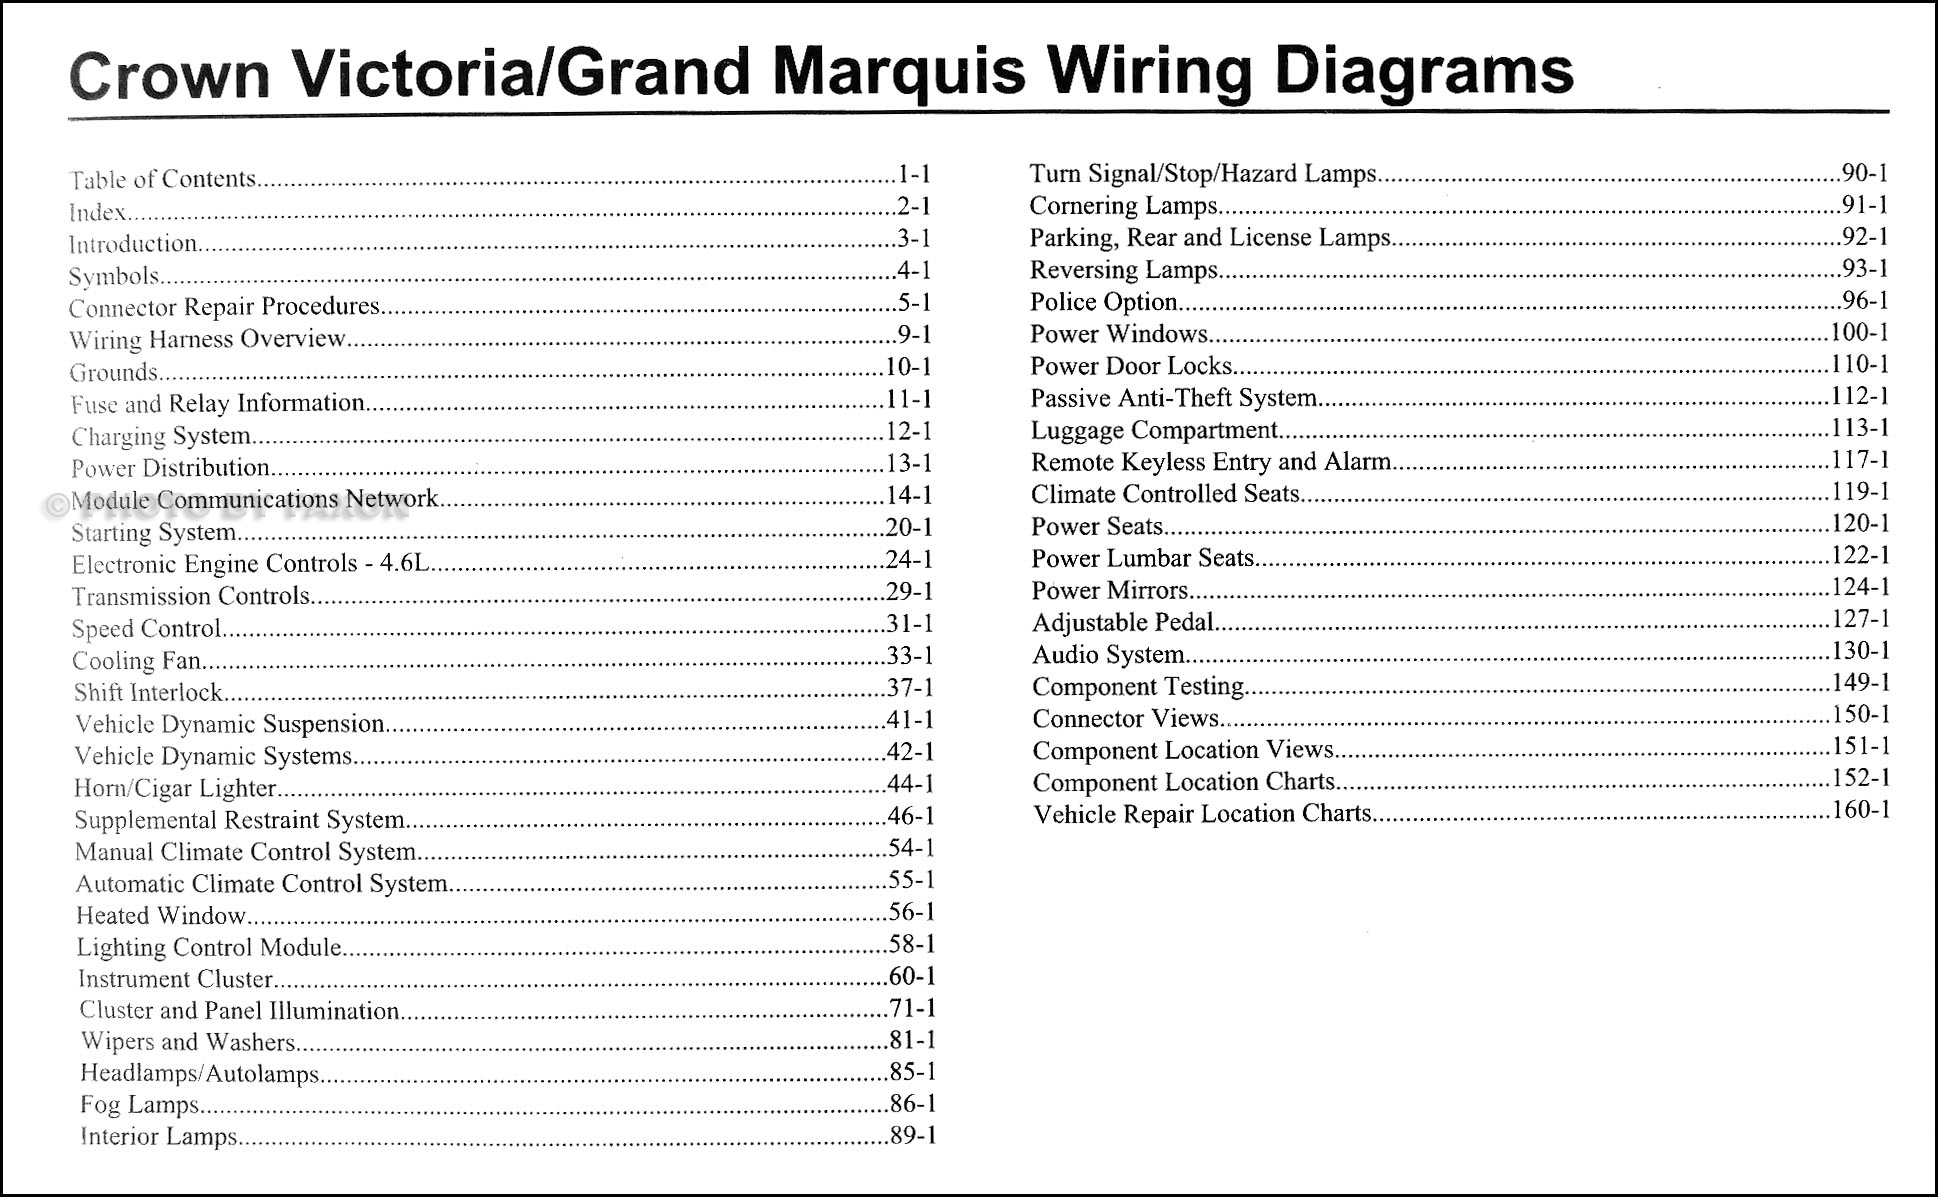 2009FordCrownVictoriaOWD TOC 2009 crown victoria & grand marquis original wiring diagram manual 2008 ford crown victoria radio wiring diagram at bayanpartner.co